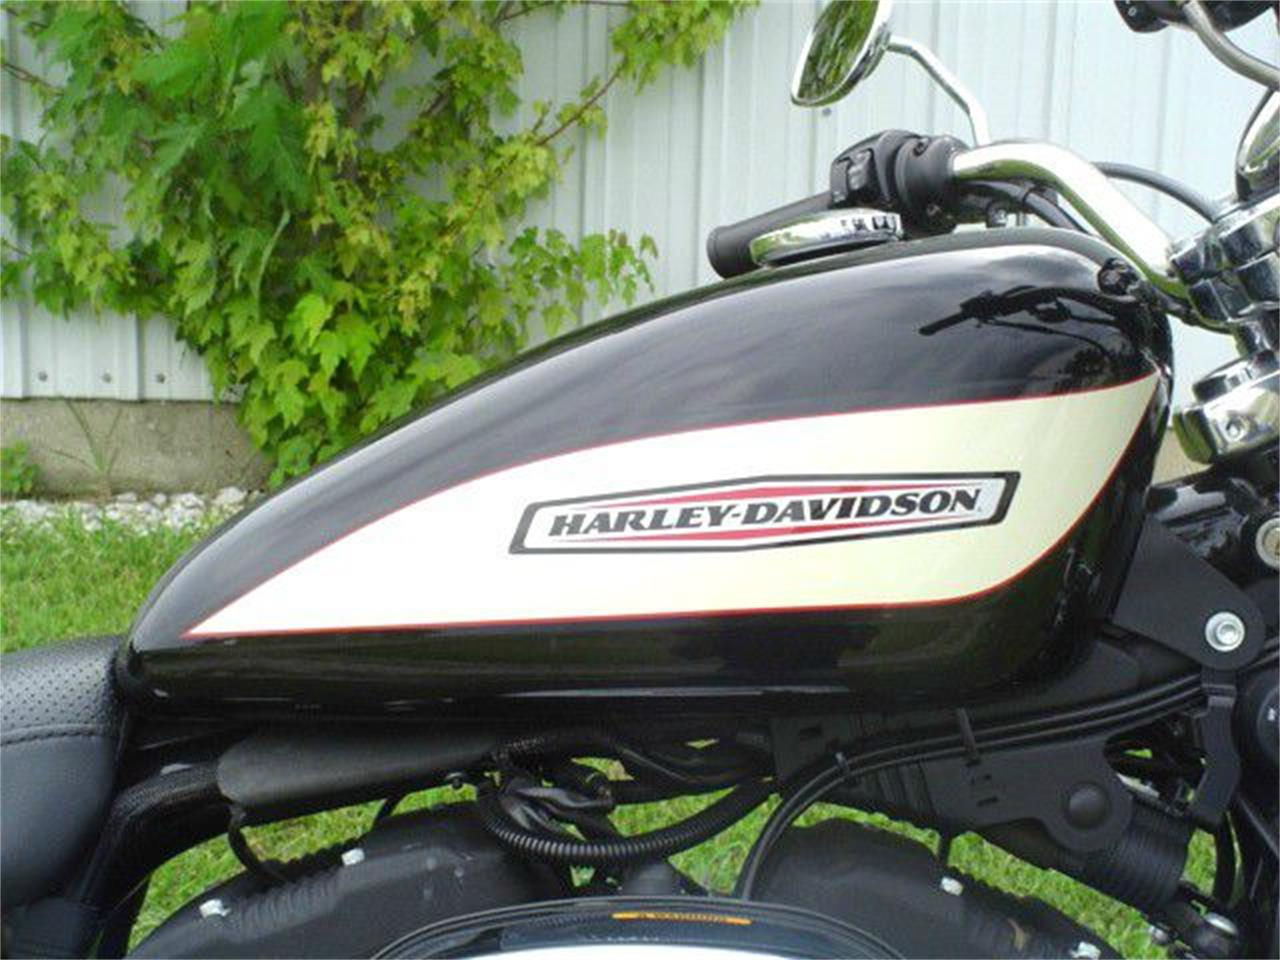 Large Picture of '07 Harley-Davidson Sportster located in Illinois - $7,995.00 - Q5AM